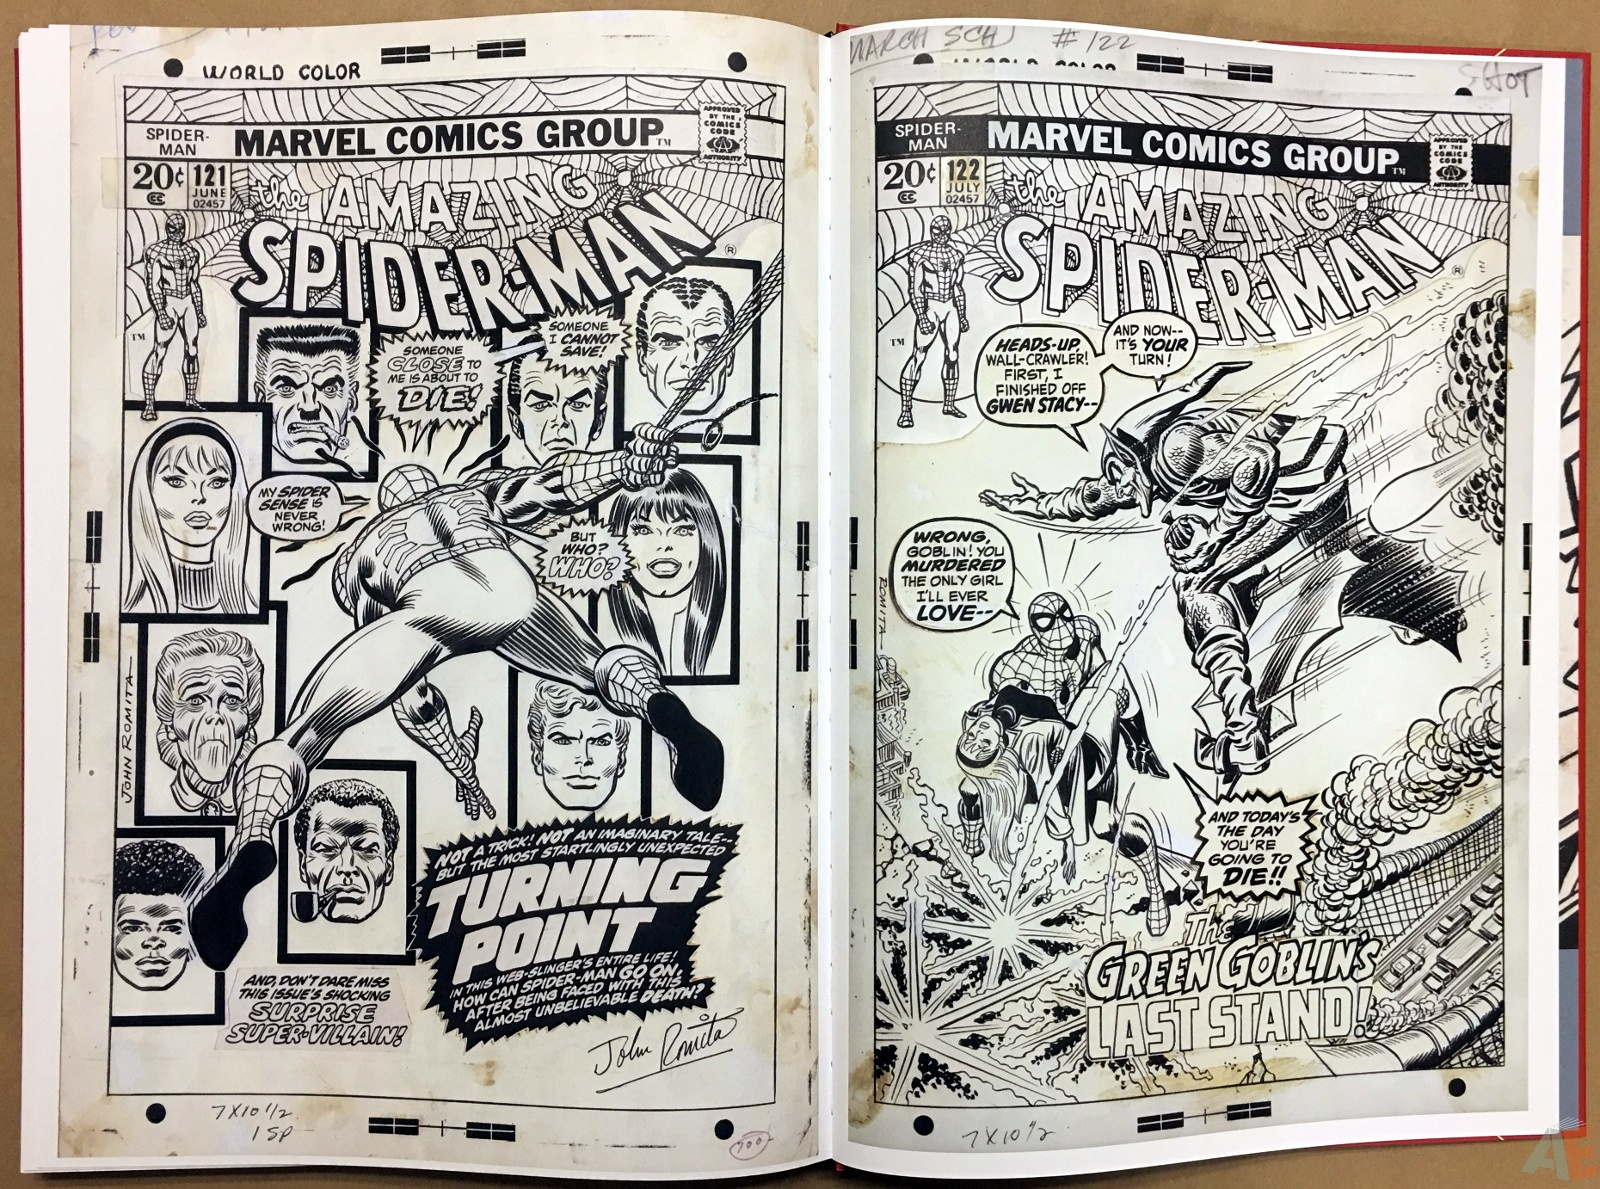 Gil Kane's The Amazing Spider-Man Artist's Edition 54